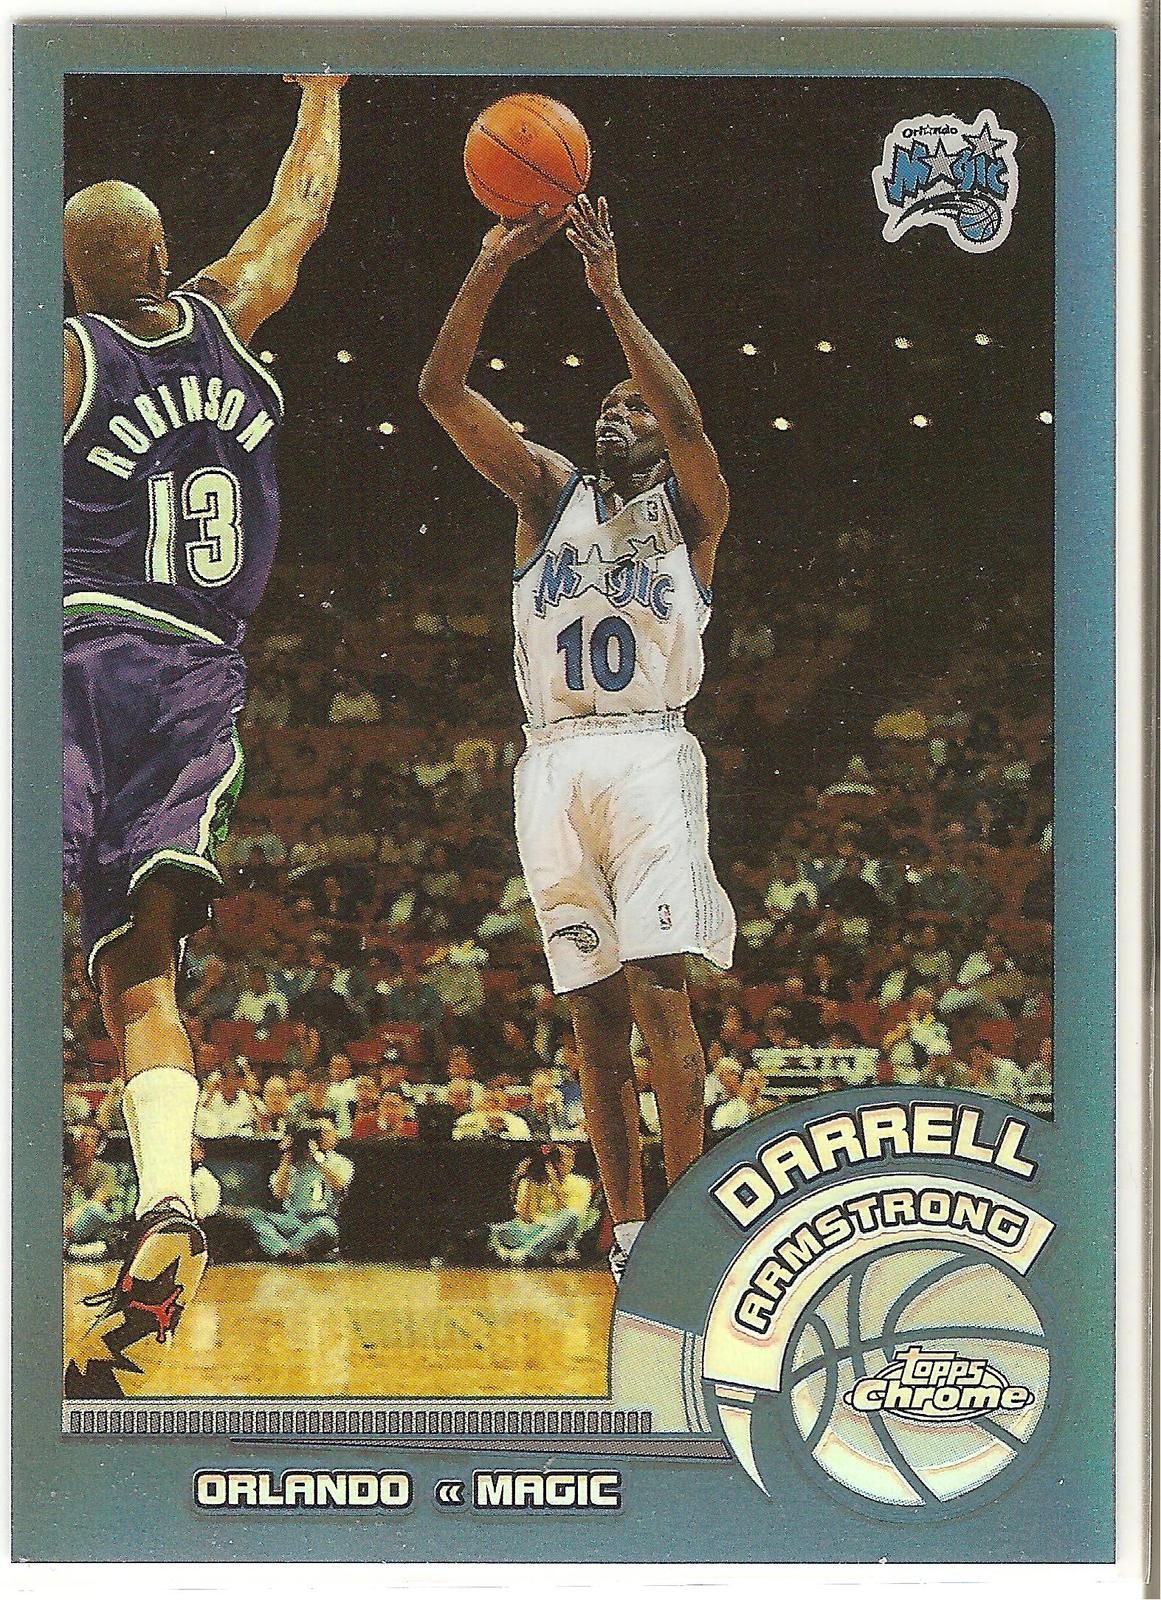 Darrell armstrong 001